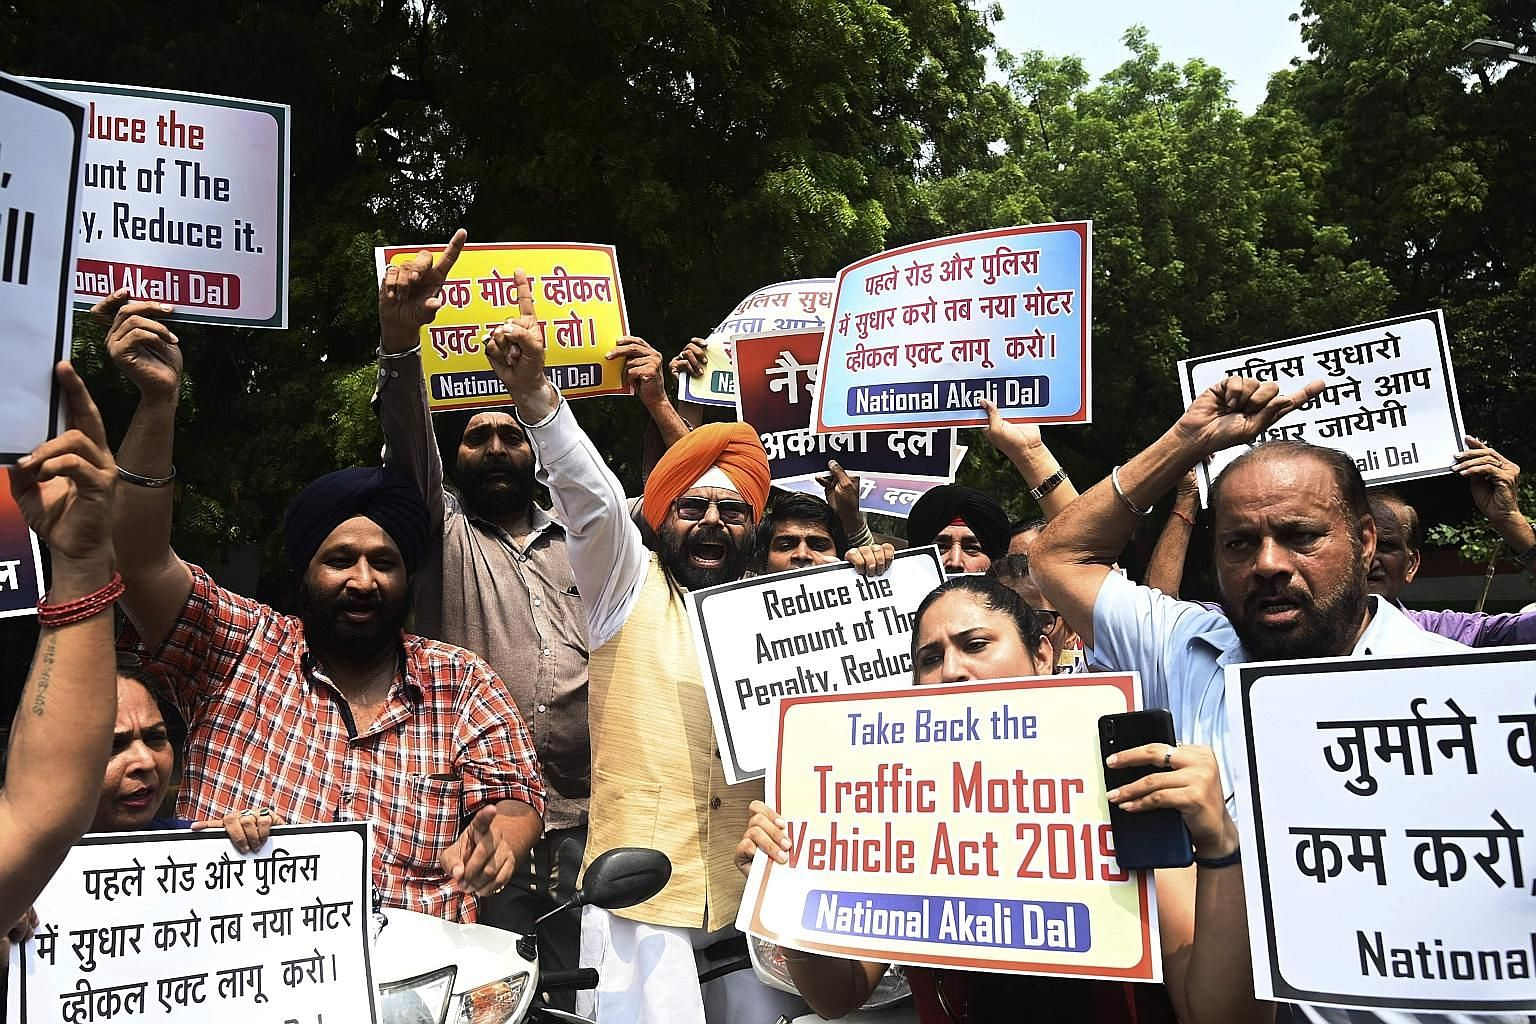 National Akali Dal president Paramjeet Singh Pamma (centre) with supporters of his political party rallying against India's new Motor Vehicle Act in New Delhi on Sunday.